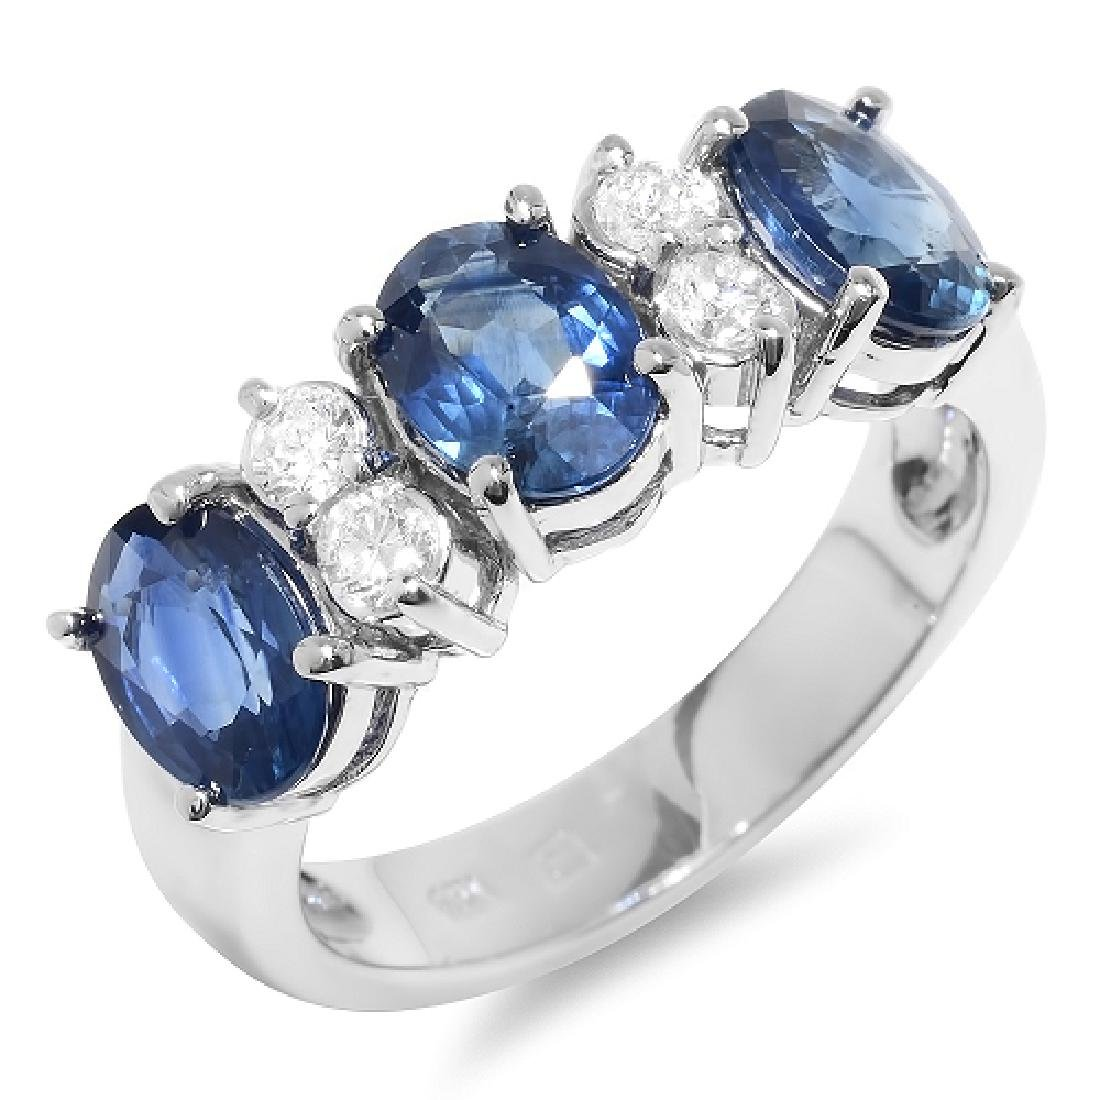 3.30 Carat Natural Sapphire 18K Solid White Gold